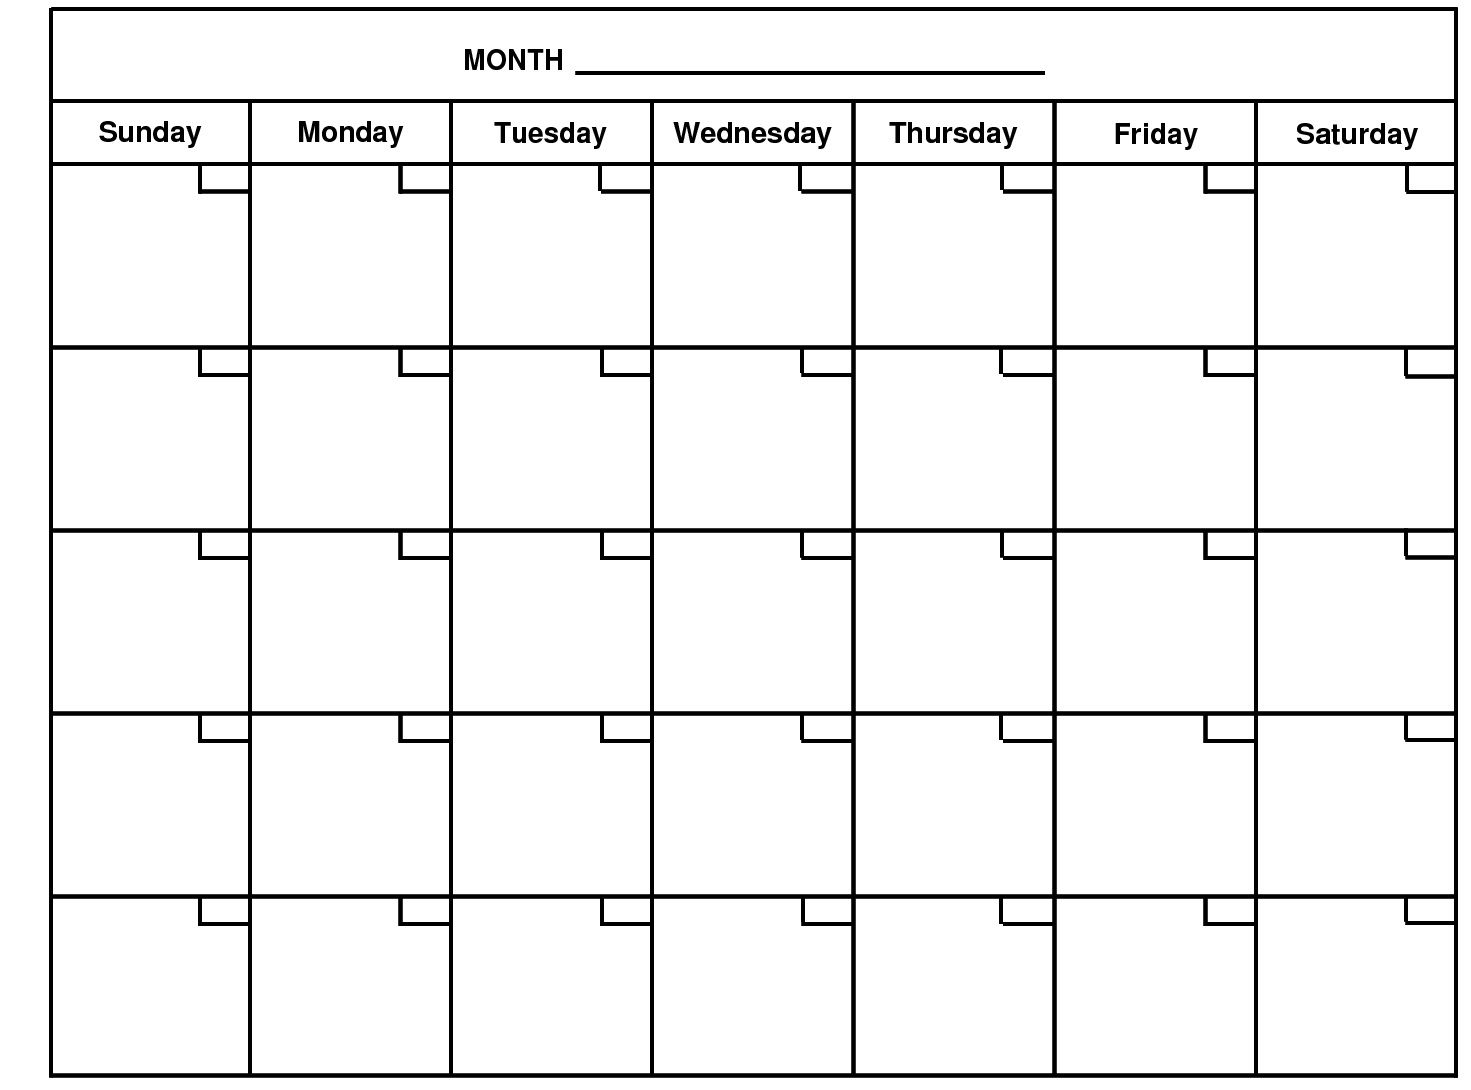 Month Calendar | monthly calendar | Projects to Try | Pinterest ...